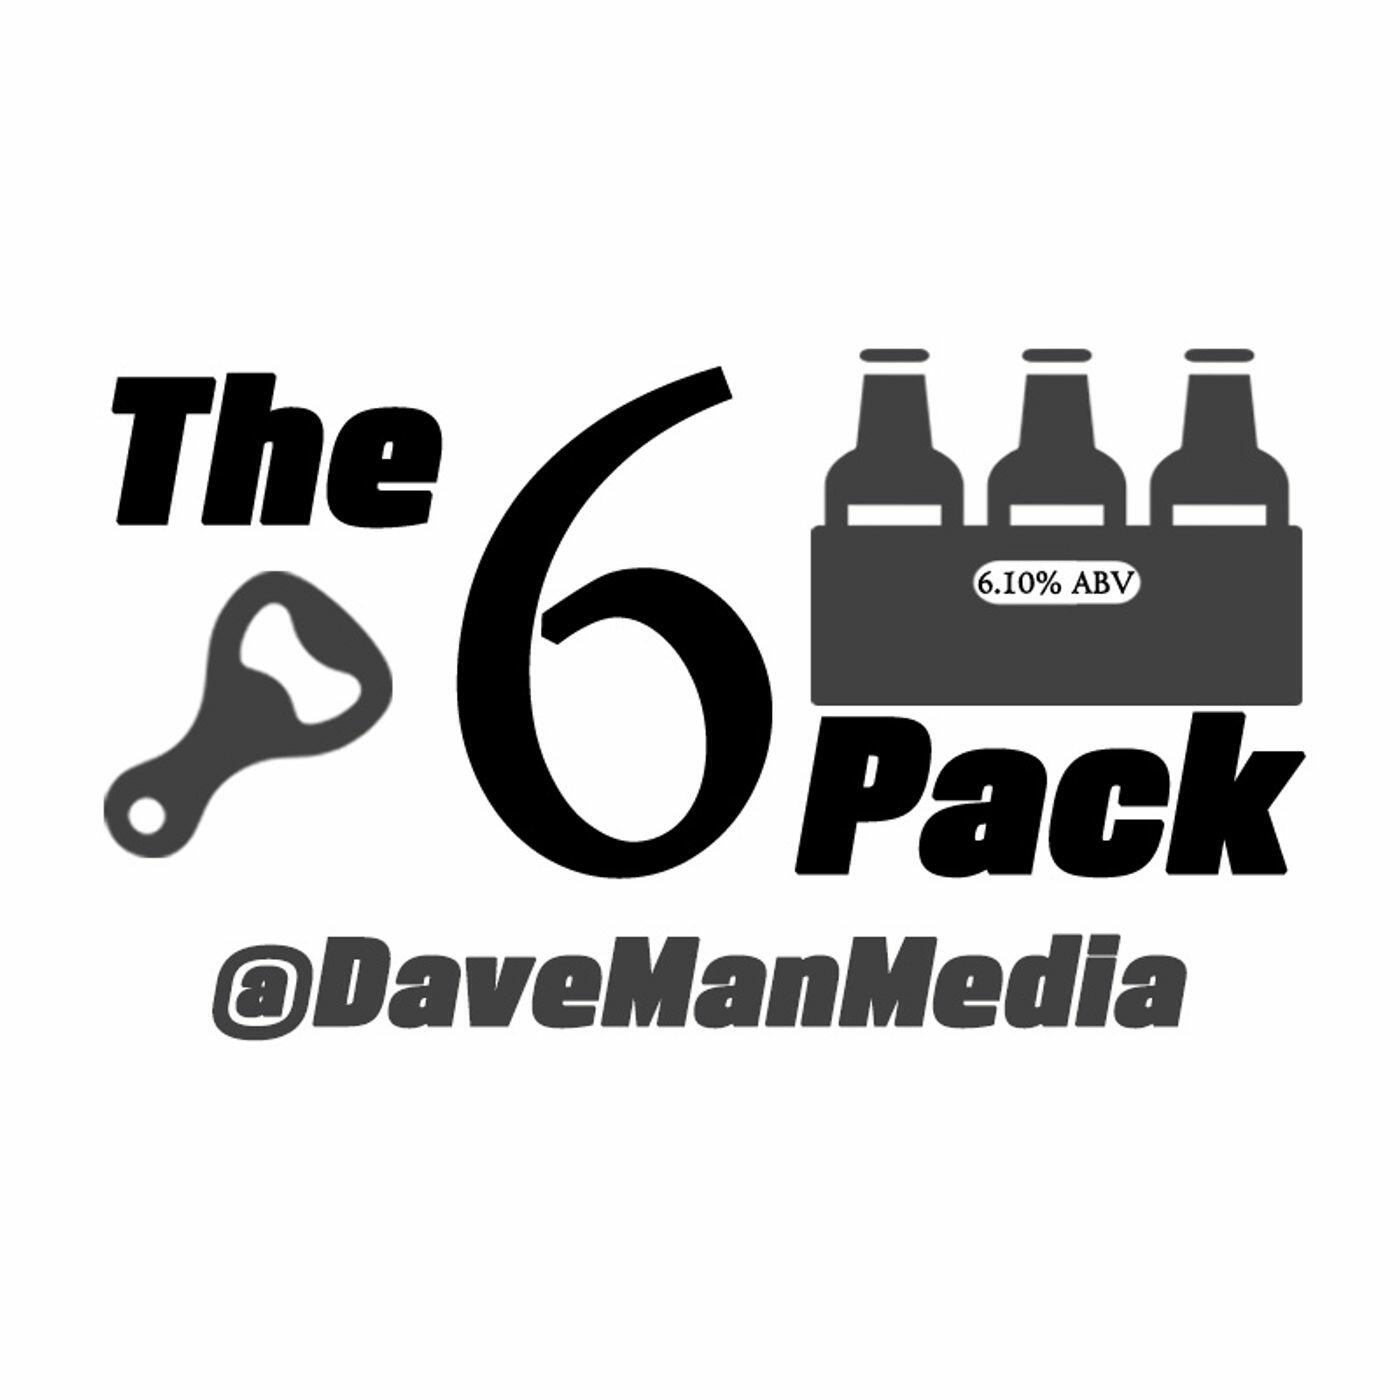 Listen to Toxic Masculinity, the Gillette Razor Commercial & Celeb Social Media Telling Us How to Live | The 6 Pack with DaveMan | Podcasts